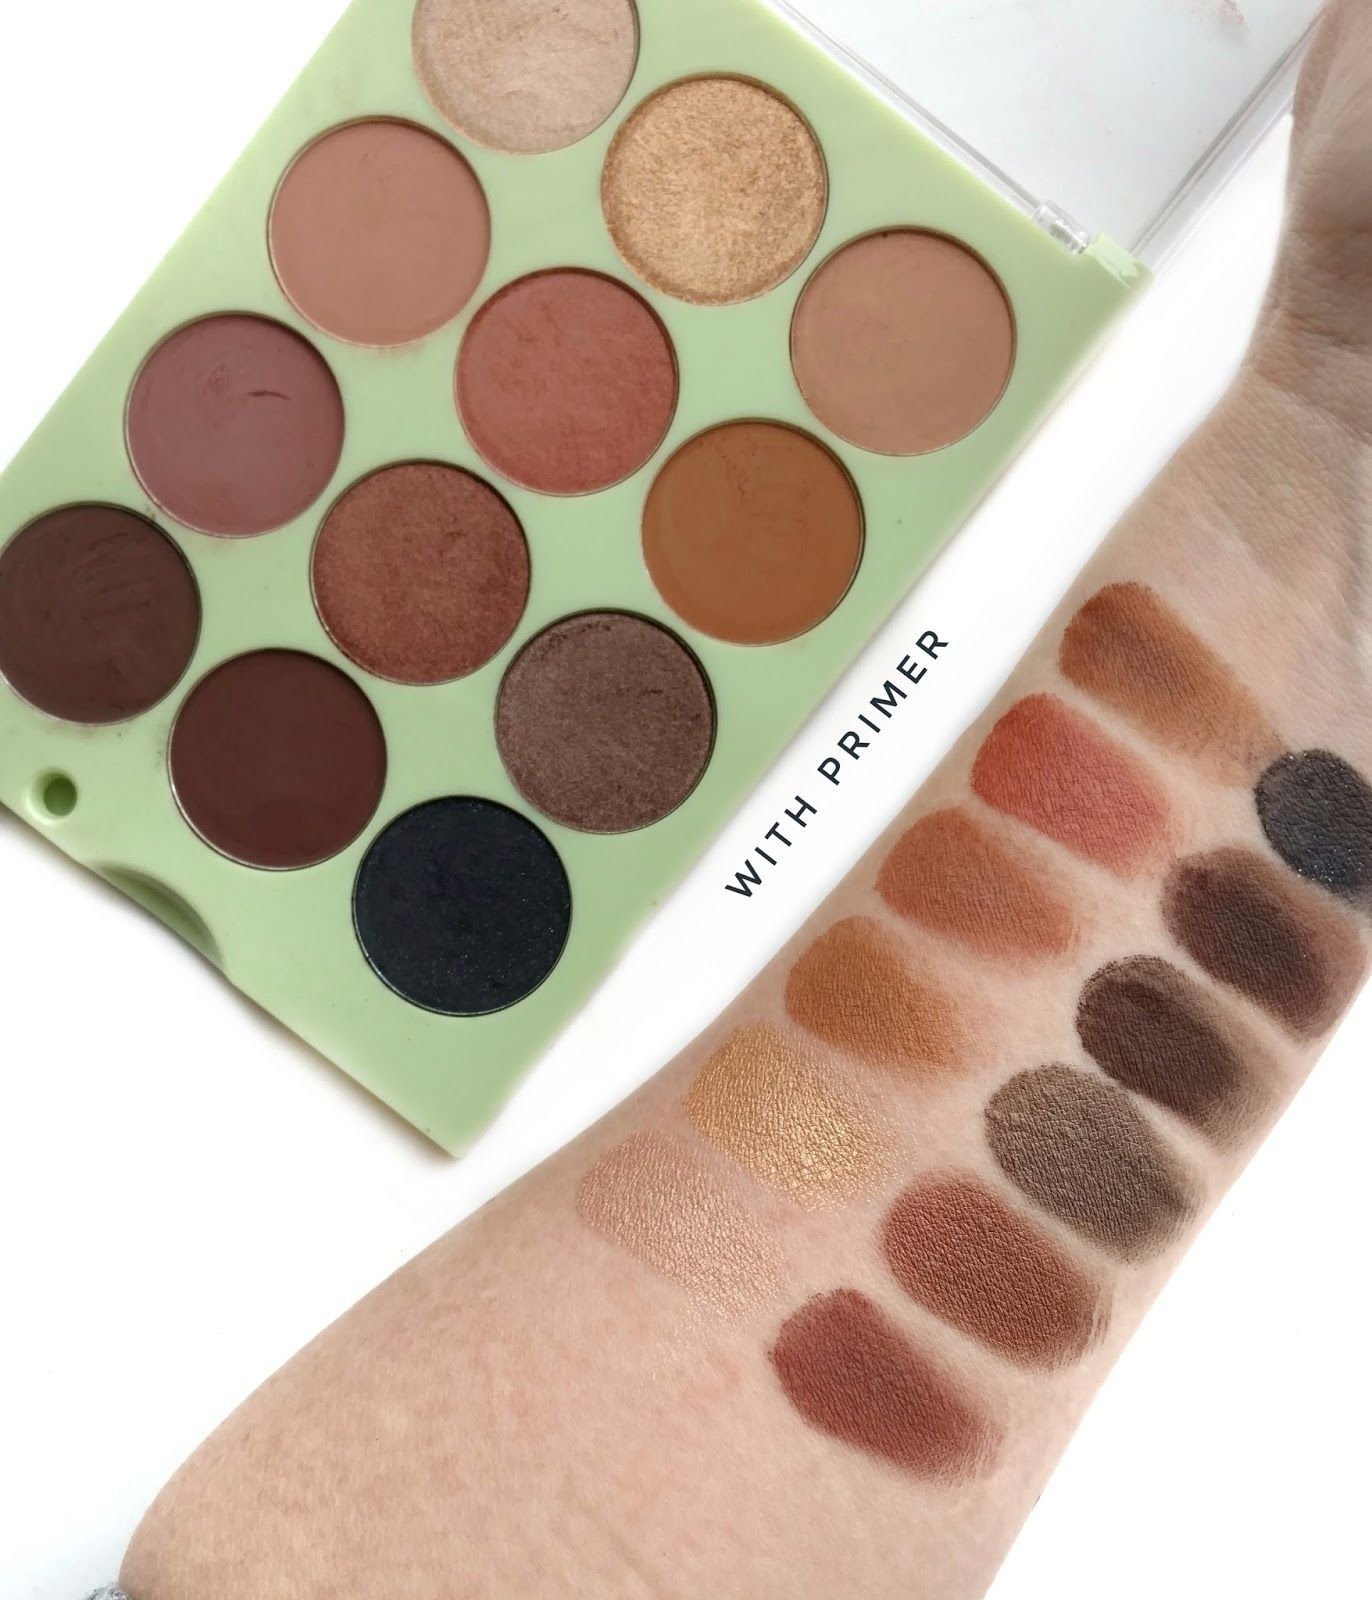 Pixi + ItsJudyTime Eyeshadow Palette Review & Swatches